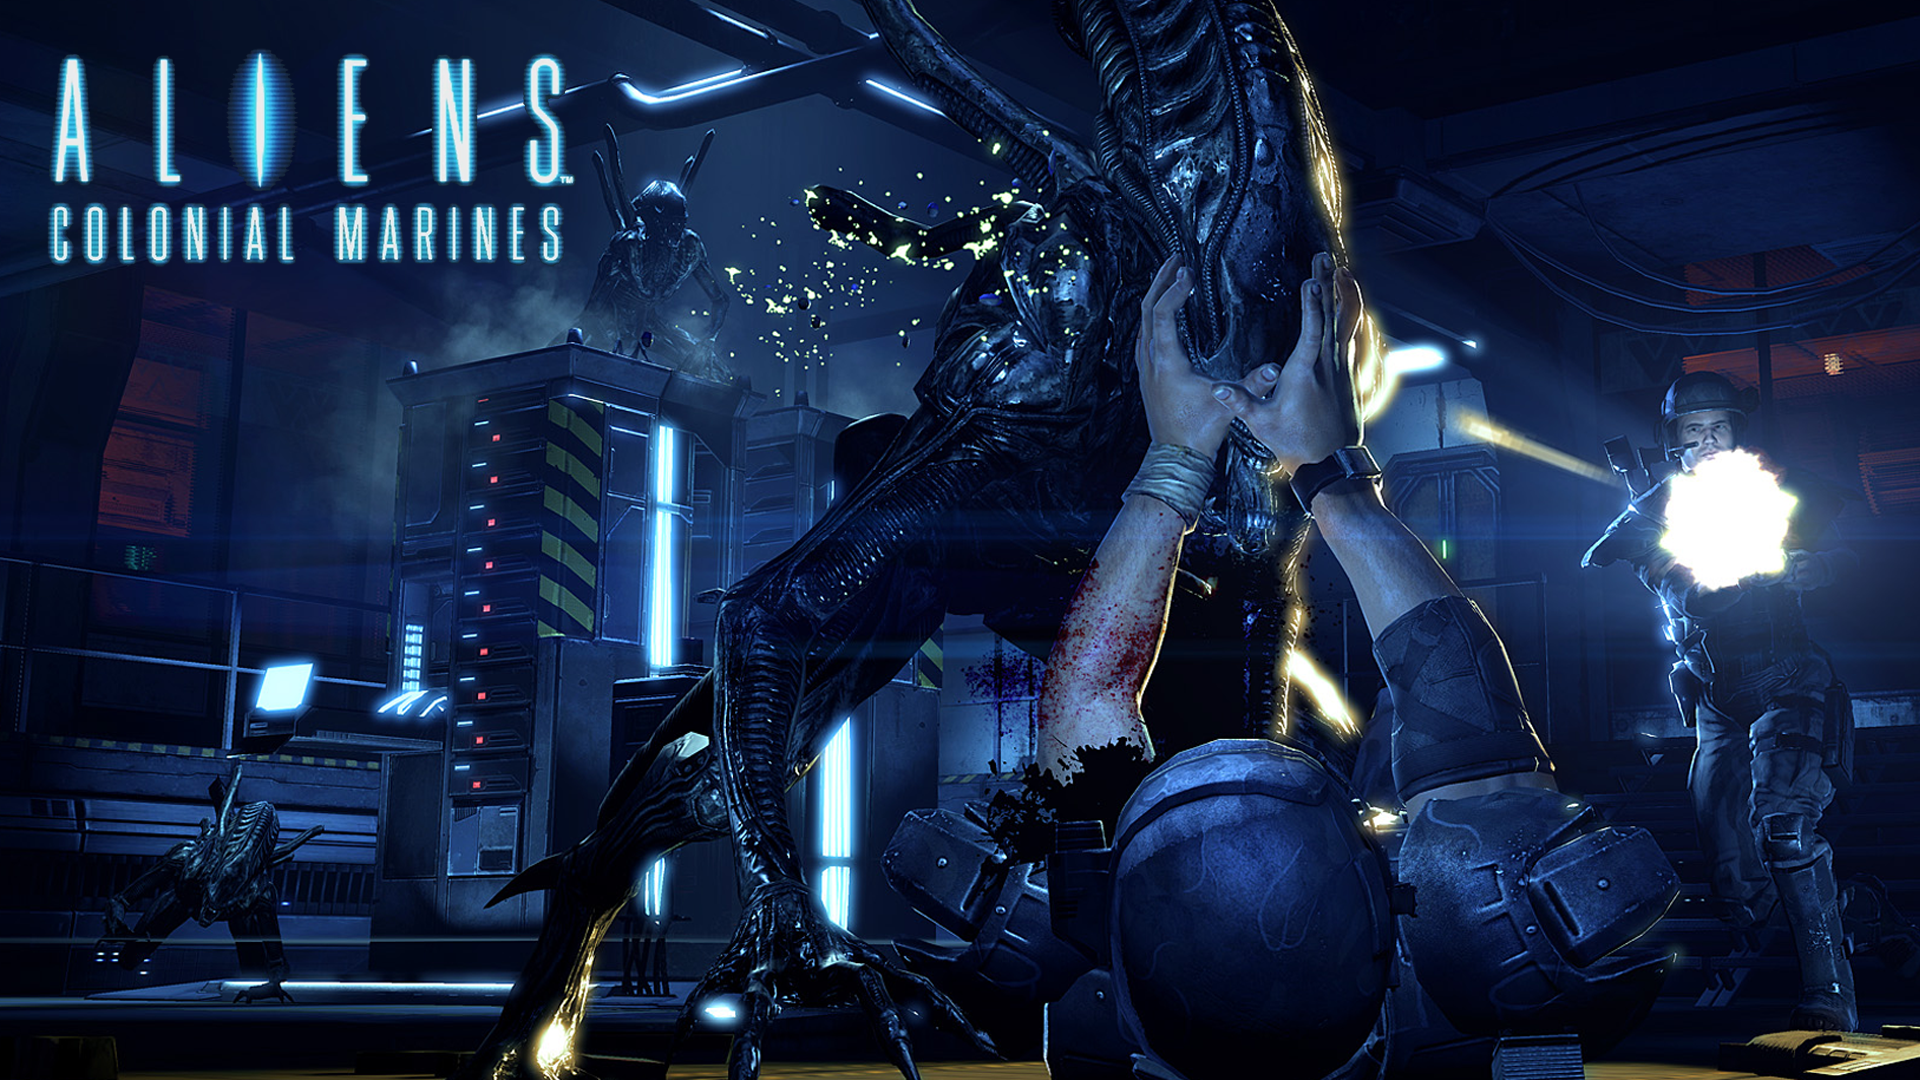 Aliens: Colonial Marines primeste patch de 4 GB